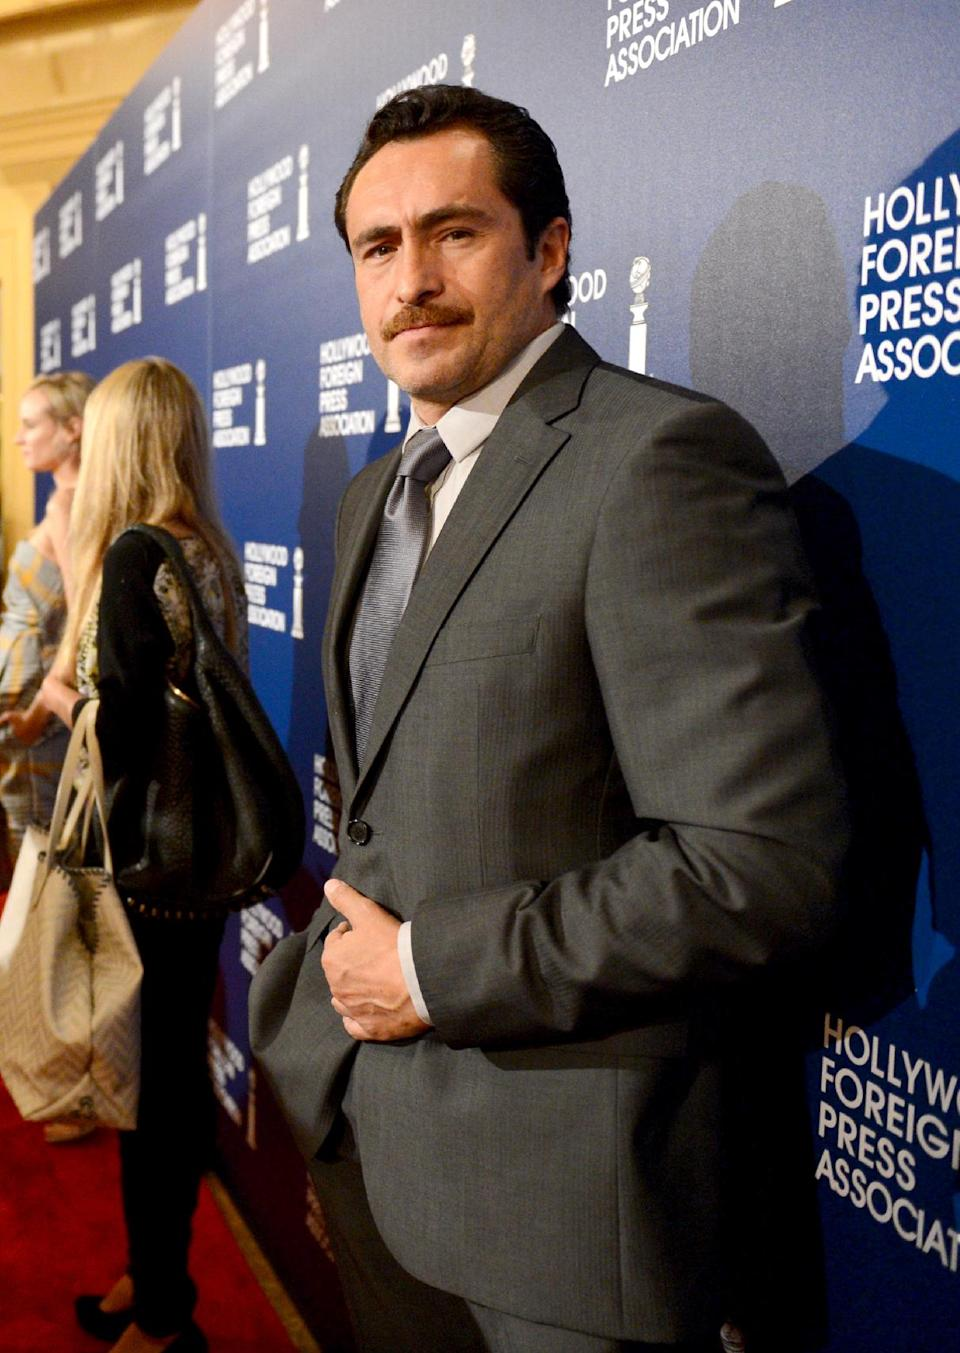 Demian Bichir arrives at the Hollywood Foreign Press Association Luncheon at the Beverly Hilton Hotel on Tuesday, Aug. 13, 2013, in Beverly Hills, Calif. (Photo by Jordan Strauss/Invision/AP)